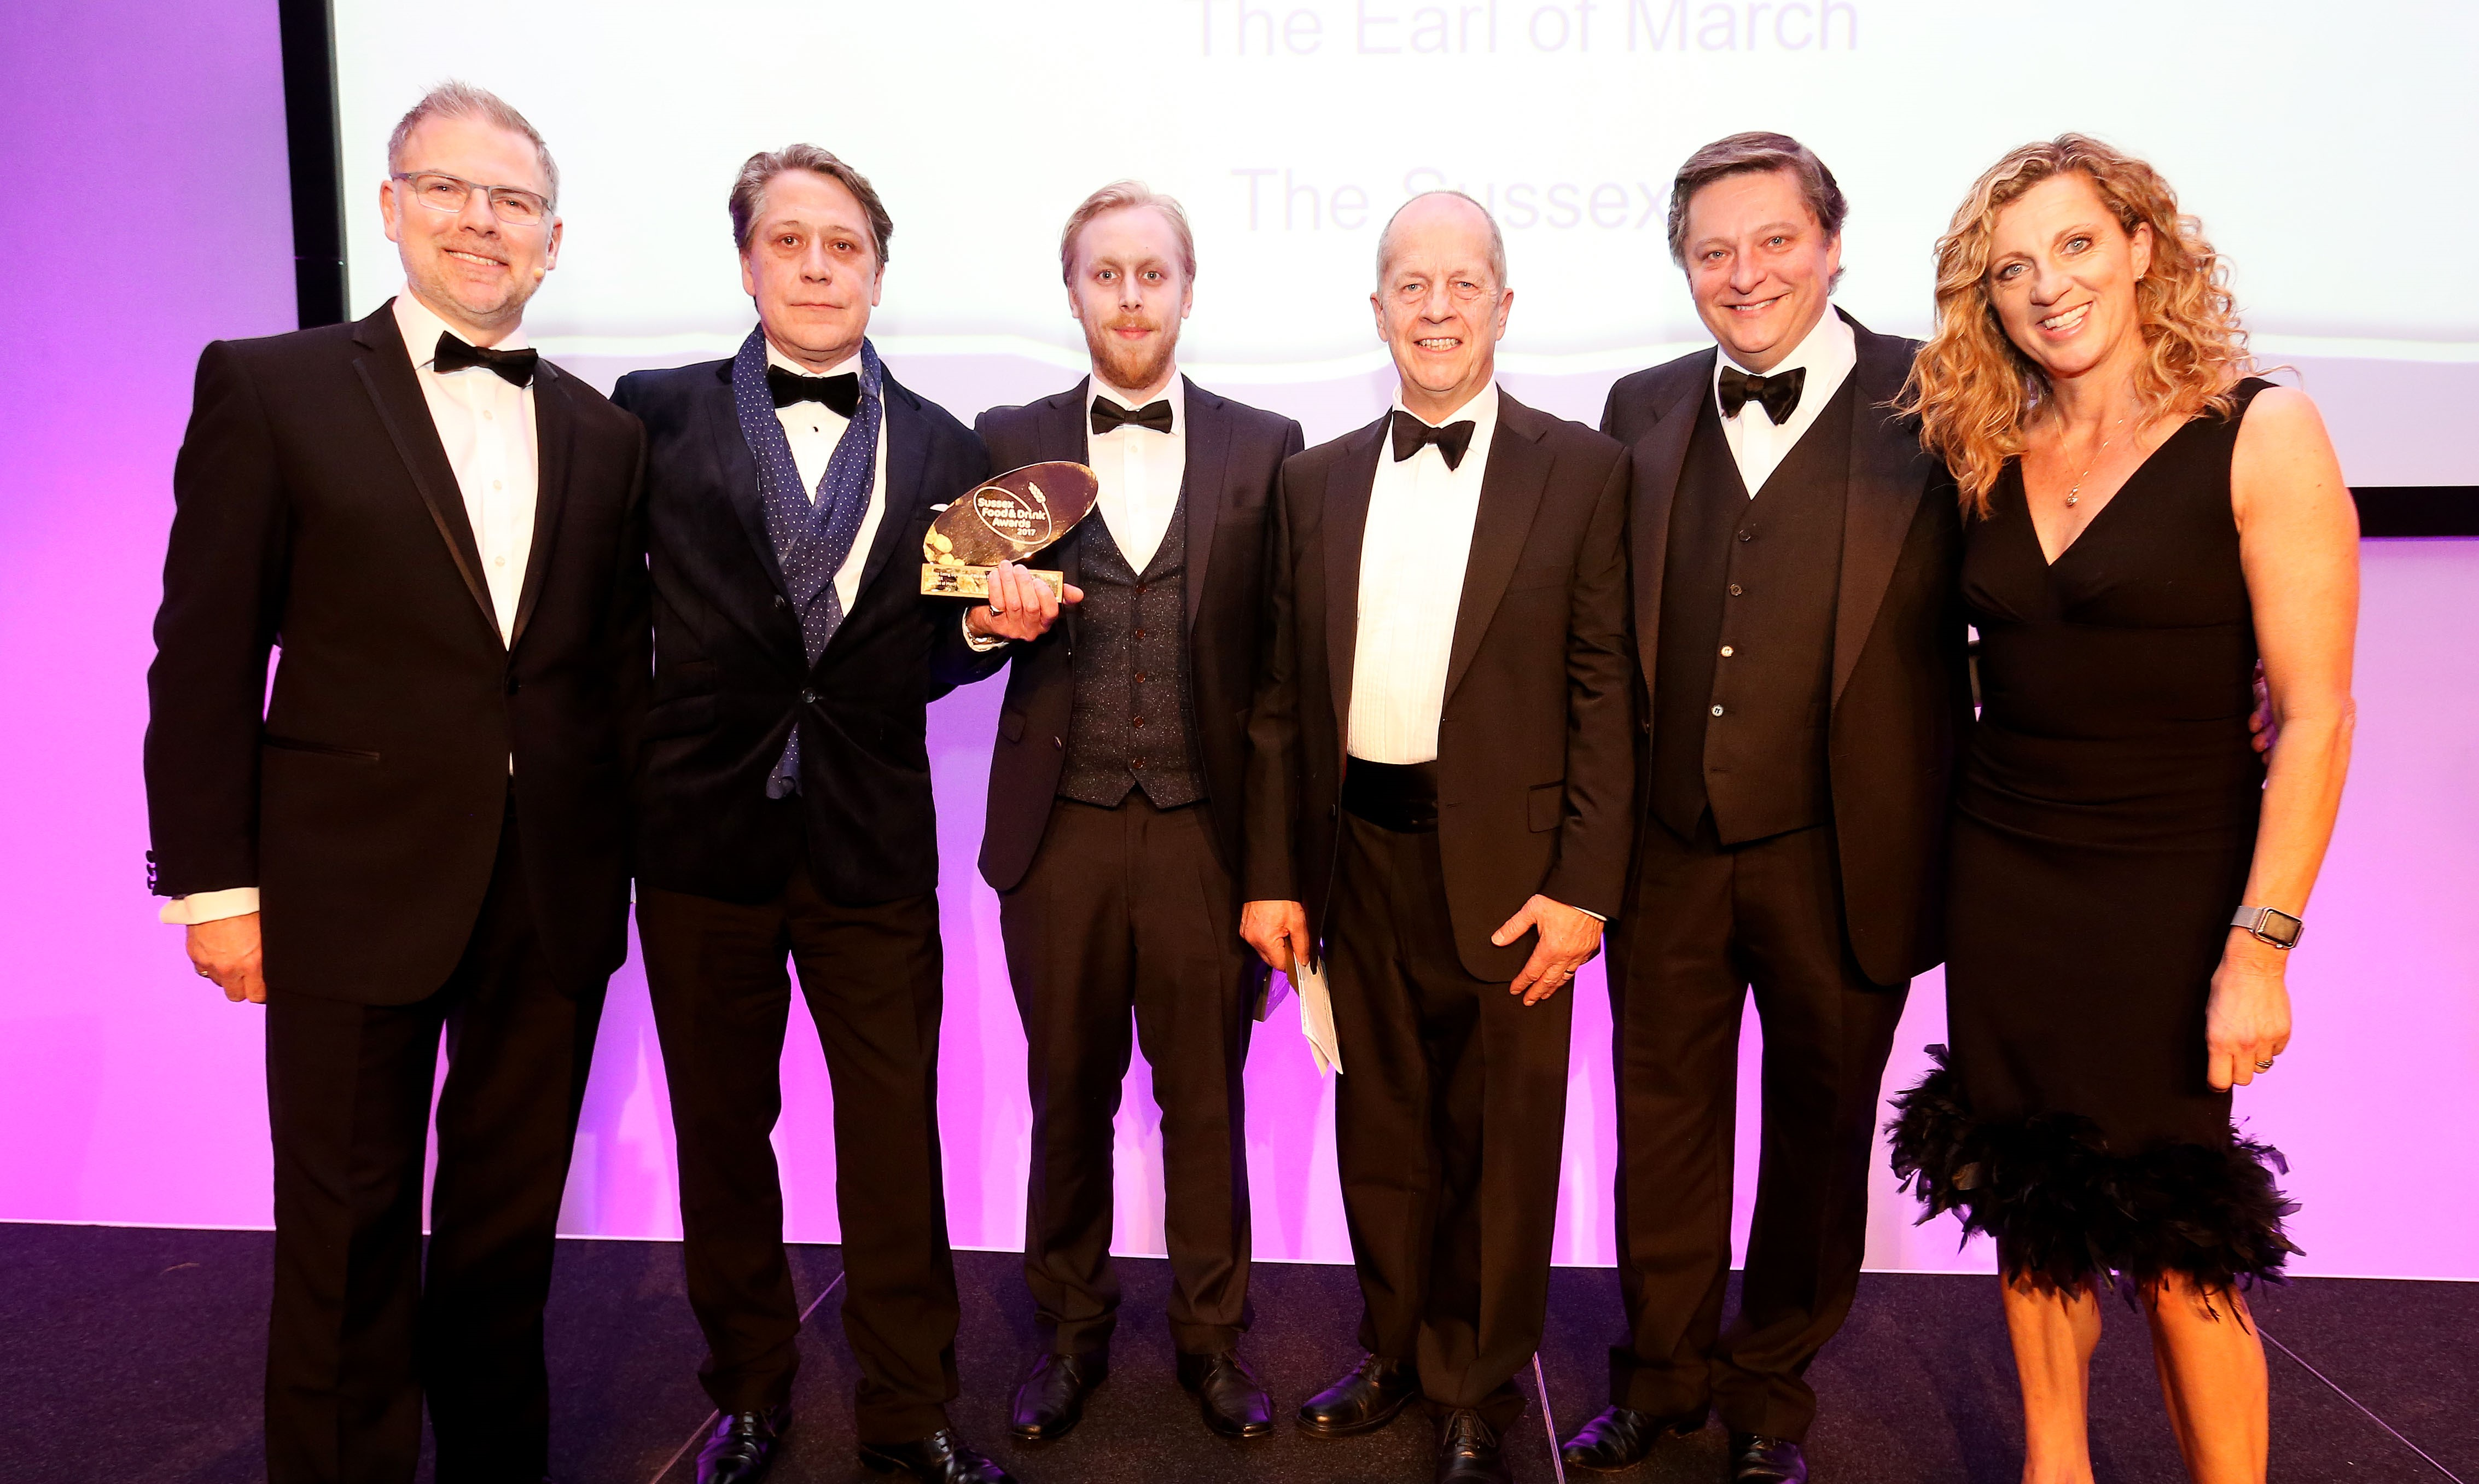 We are very proud Winners of the Sussex Food & Drink Awards !!